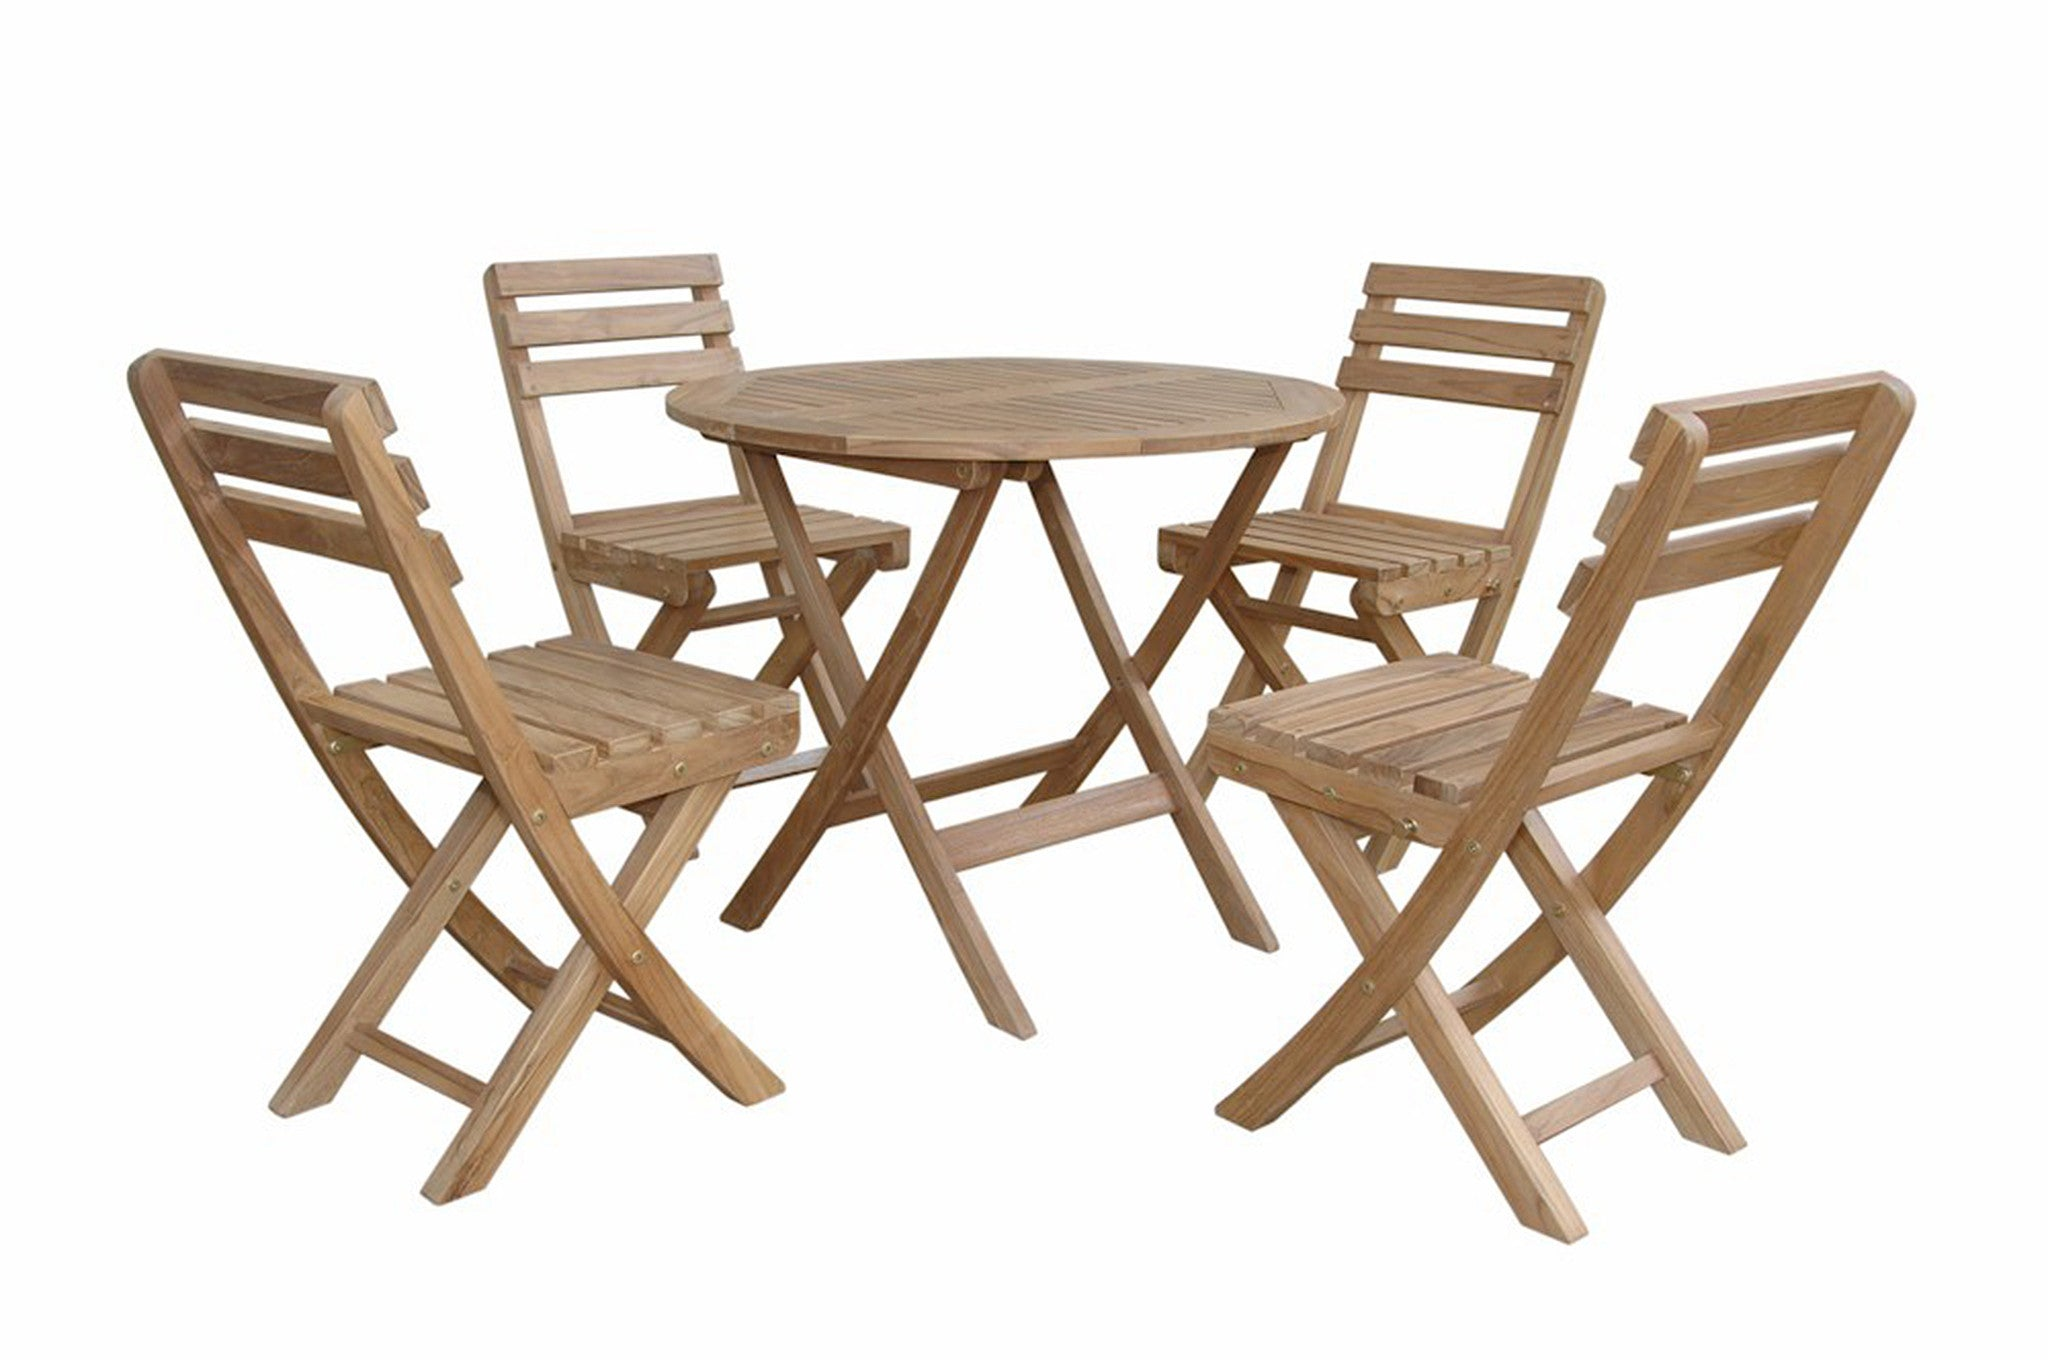 Anderson teak chester 32 picnic table w 4 folding armchairs by chapman